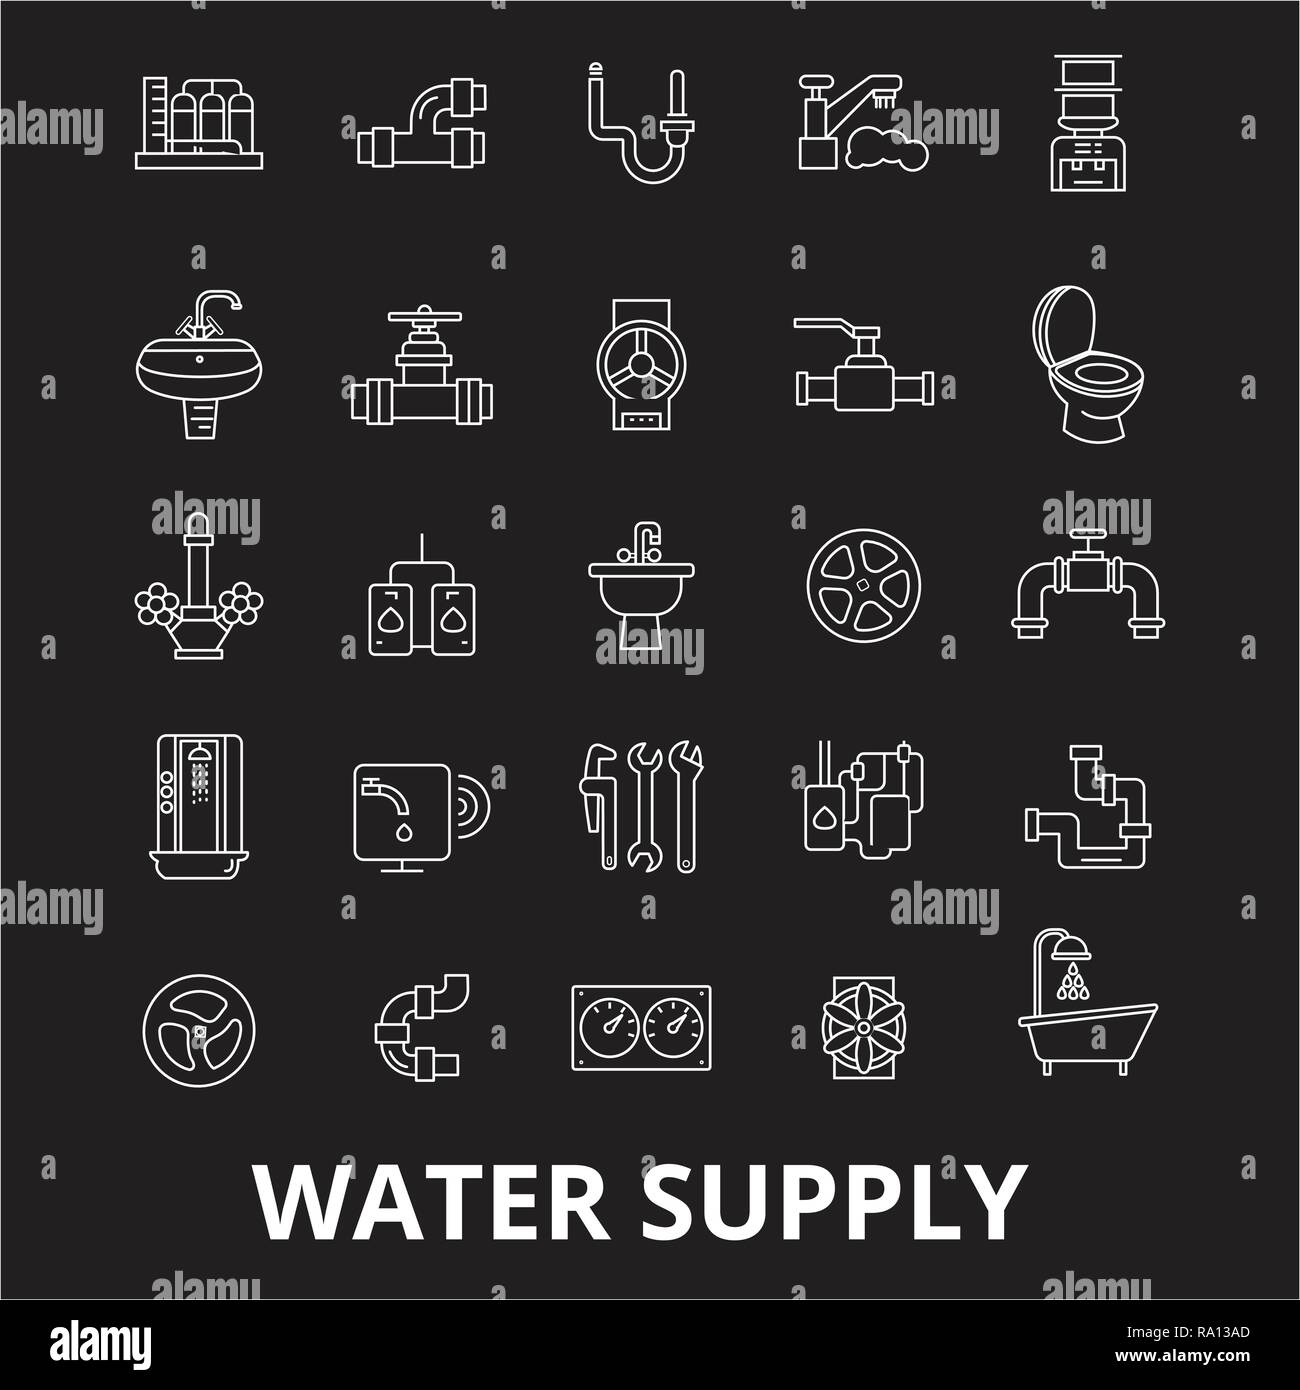 Water supply editable line icons vector set on black background. Water supply white outline illustrations, signs, symbols - Stock Image